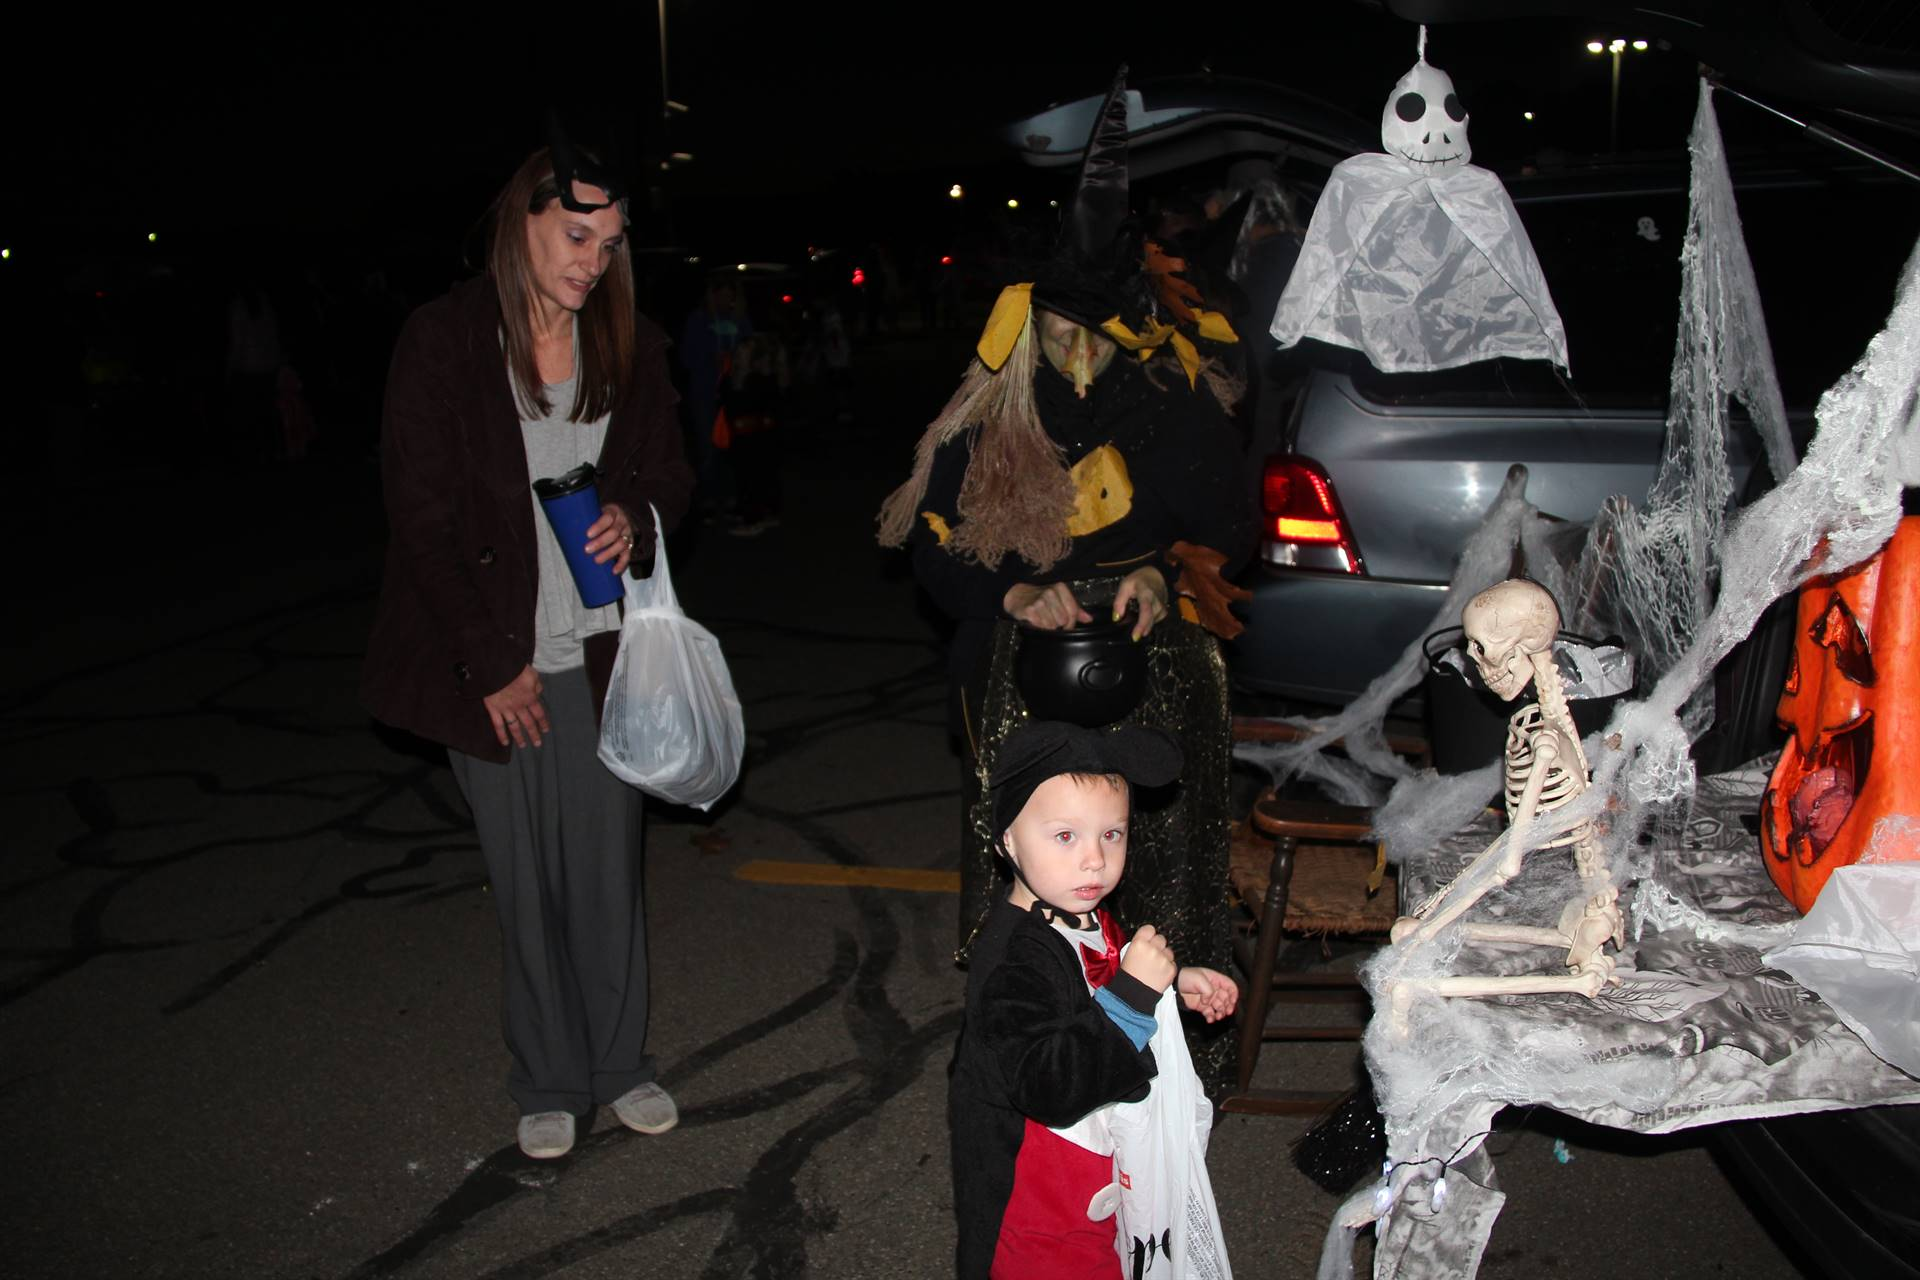 child dressed up at trunk or treat event